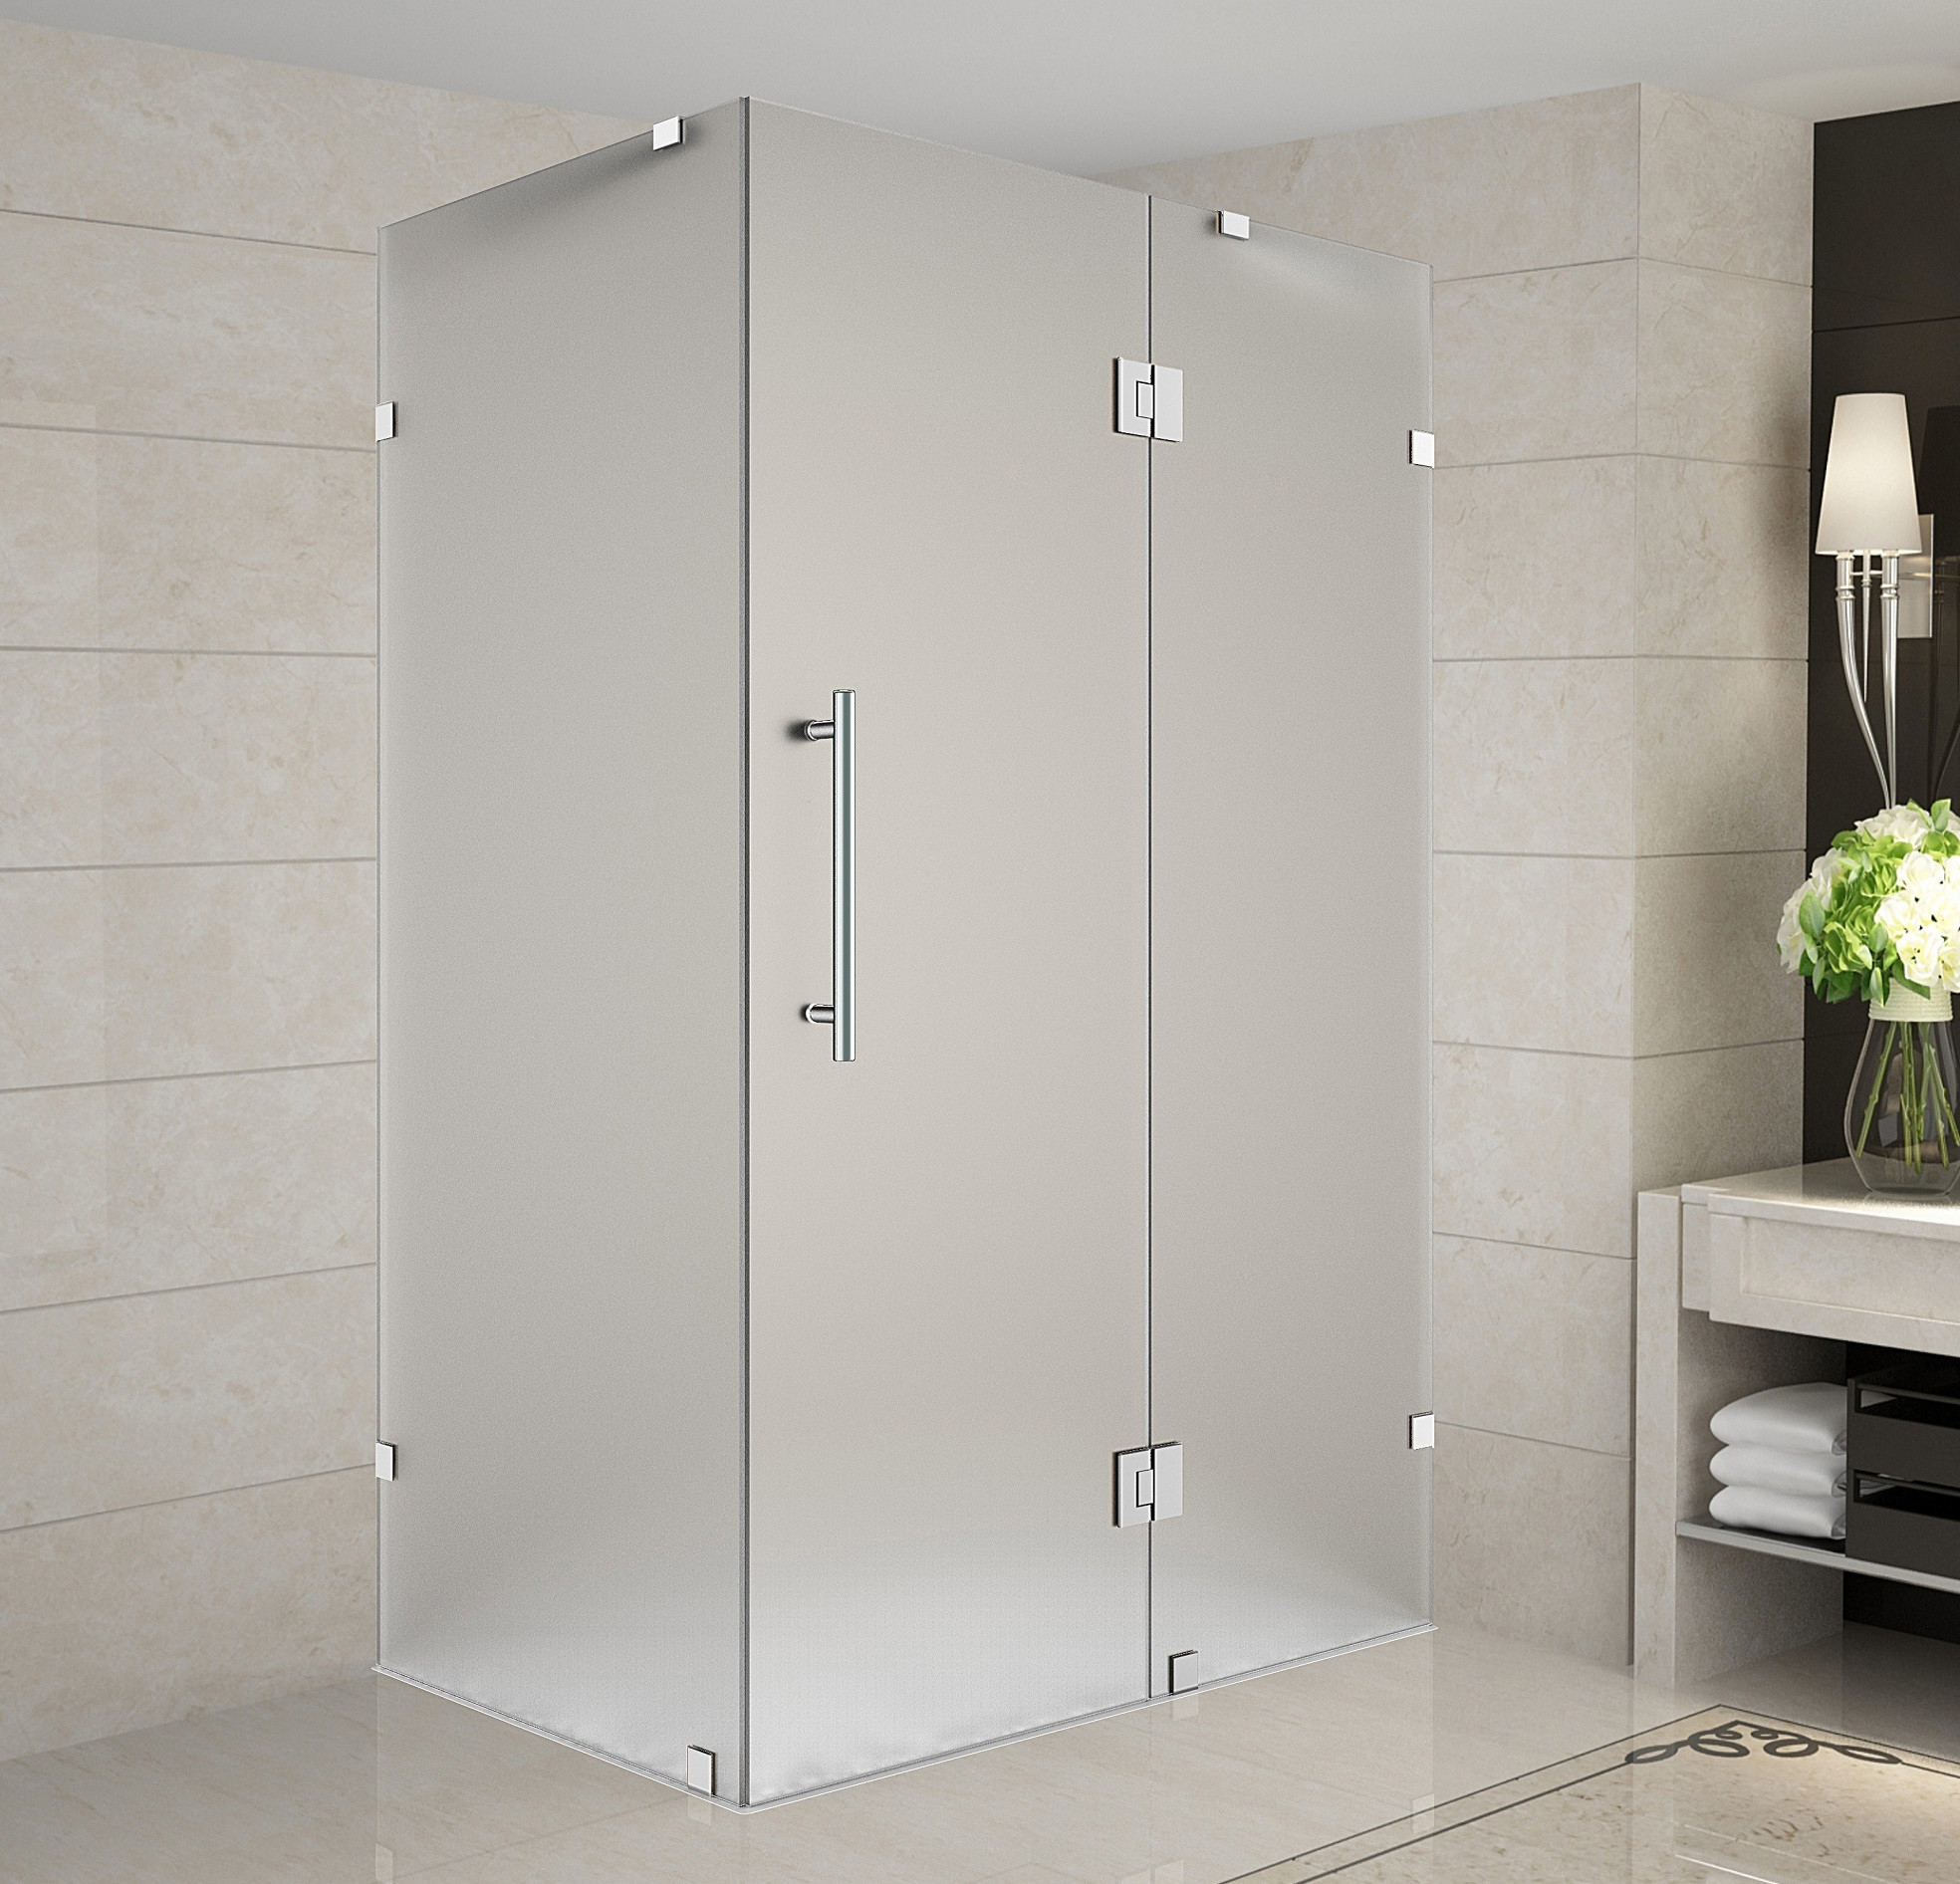 Aston Global SEN987F-SS-3432-10 Frameless Frosted Glass Shower Enclosure In Stainless Steel